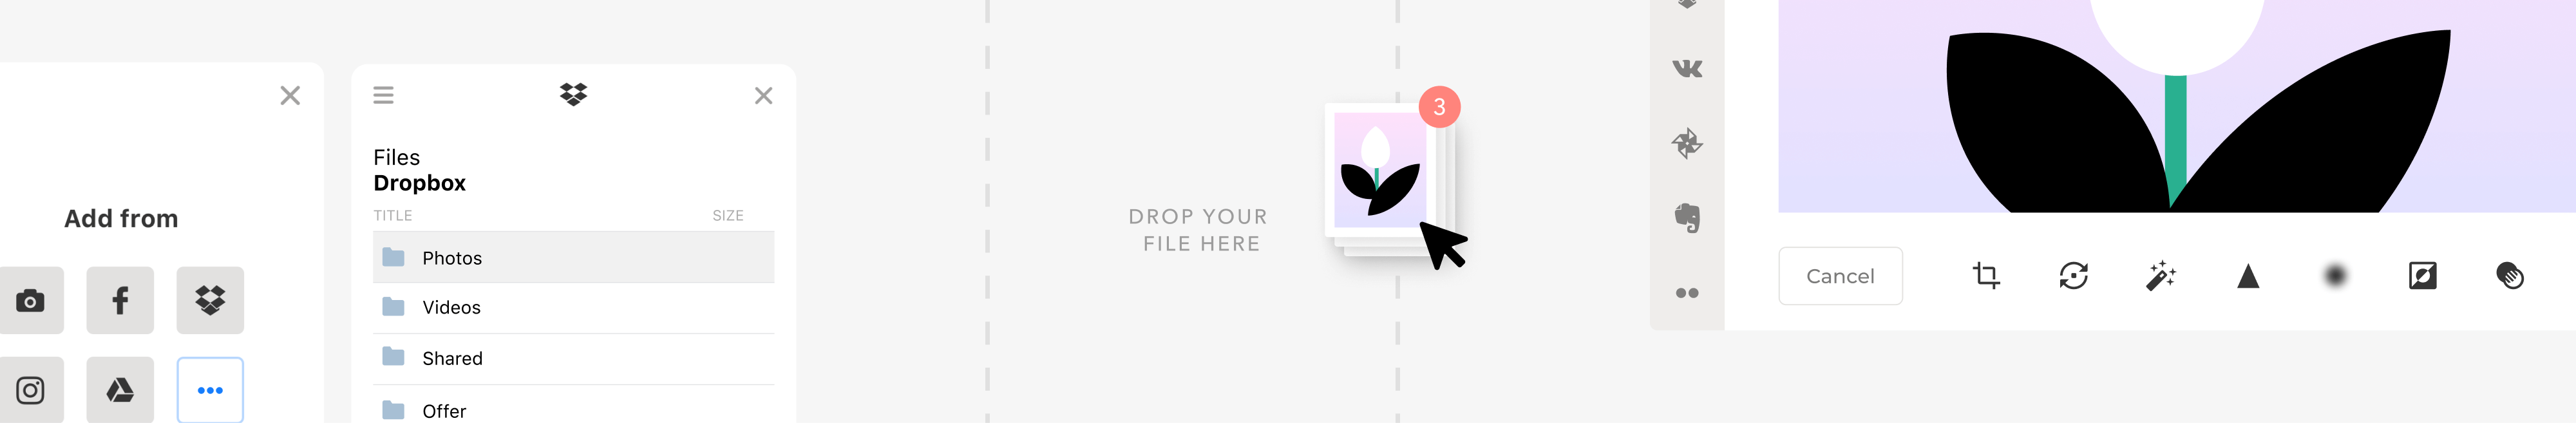 Here are 4 pitfalls a startup can fall into with file handling, by Julia Nazarenko.